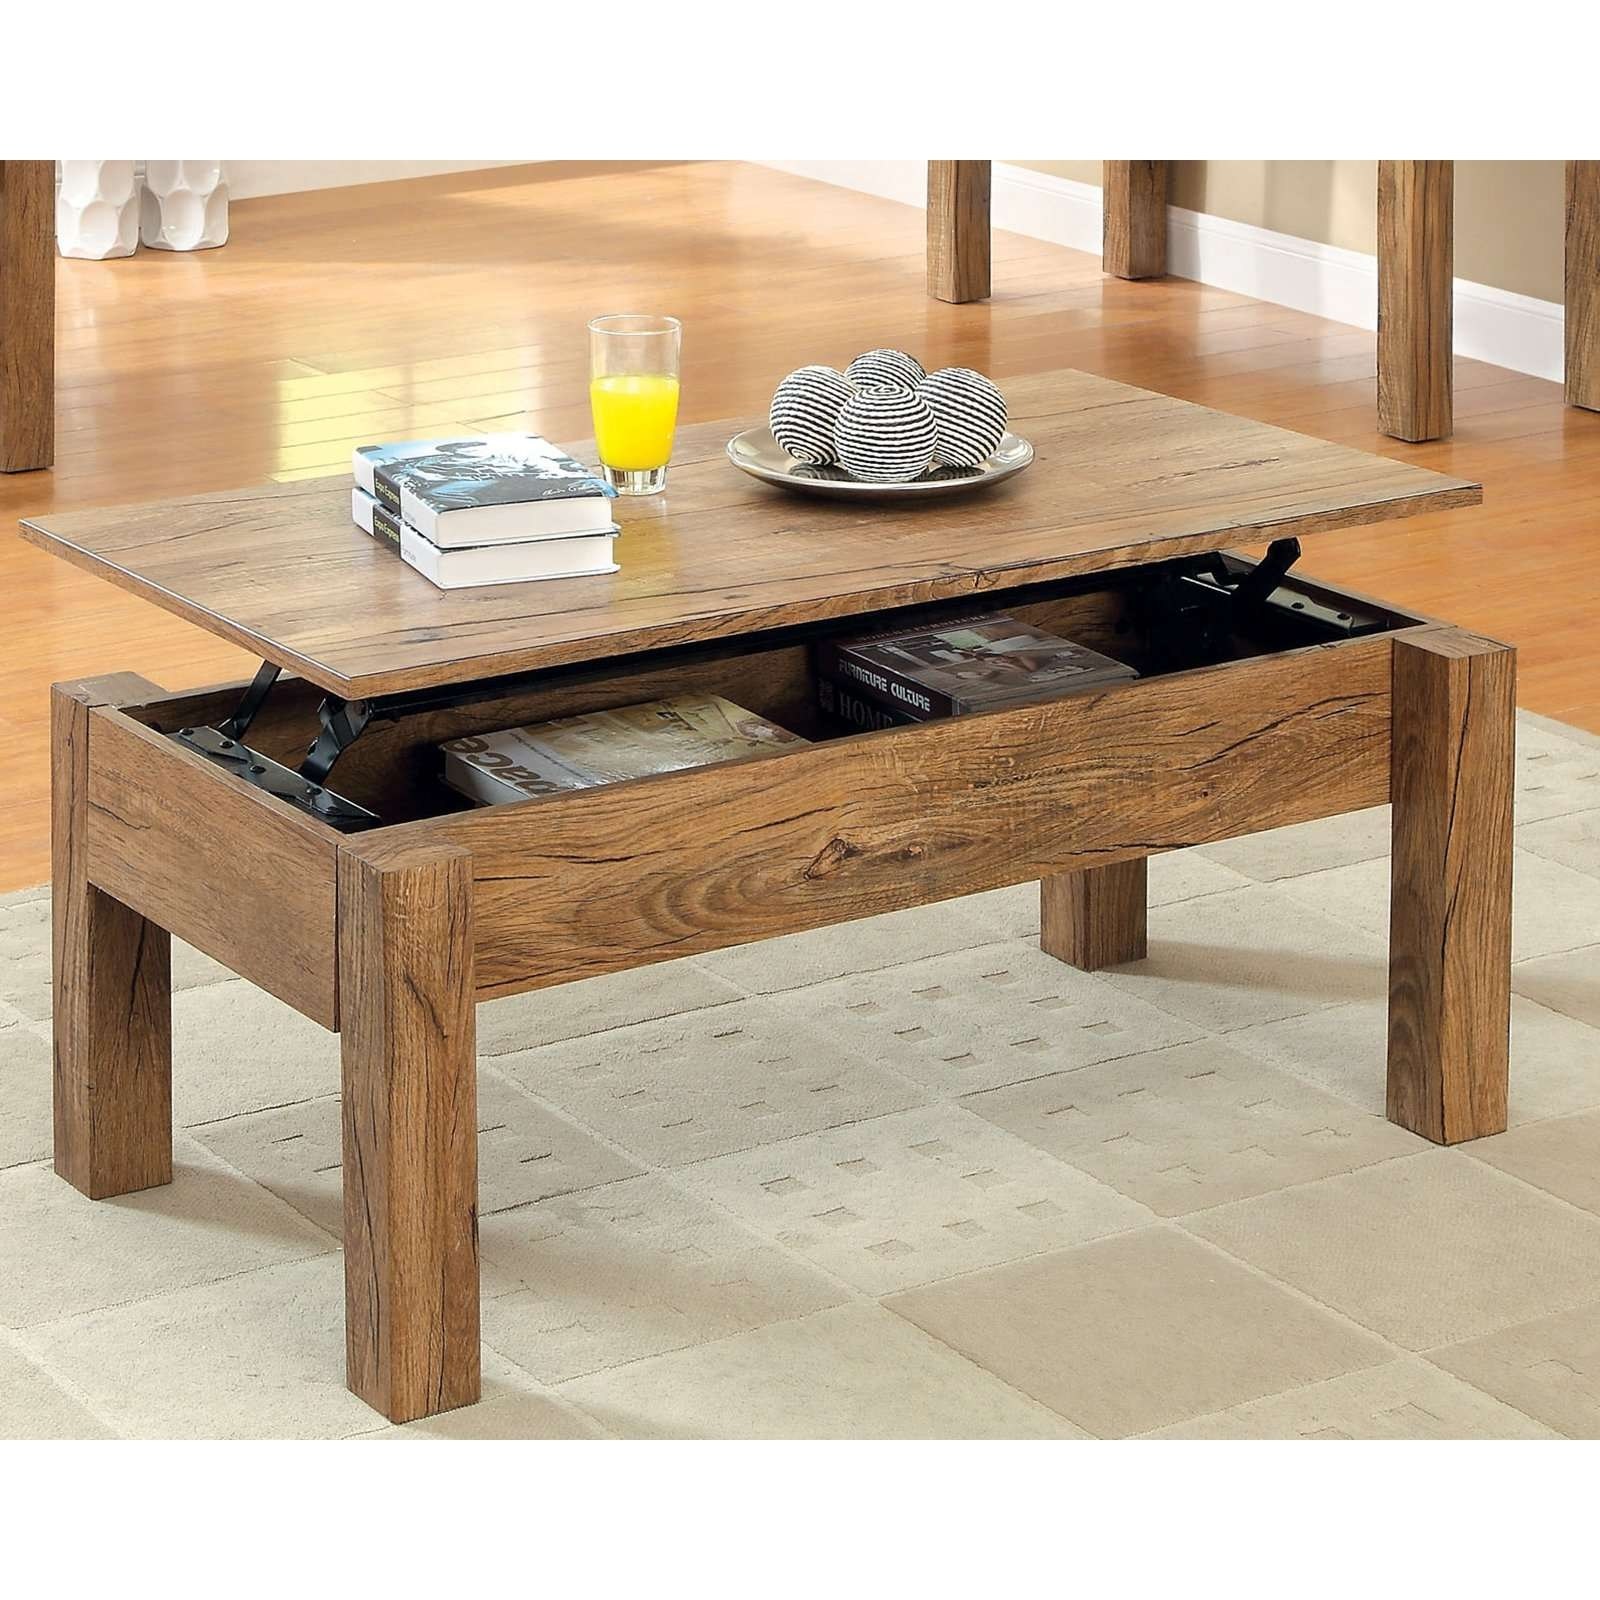 Coffee Tables : Simple Walnut Coffee Table Lift Top With Stools With Regard To 2018 Rising Coffee Tables (View 18 of 20)